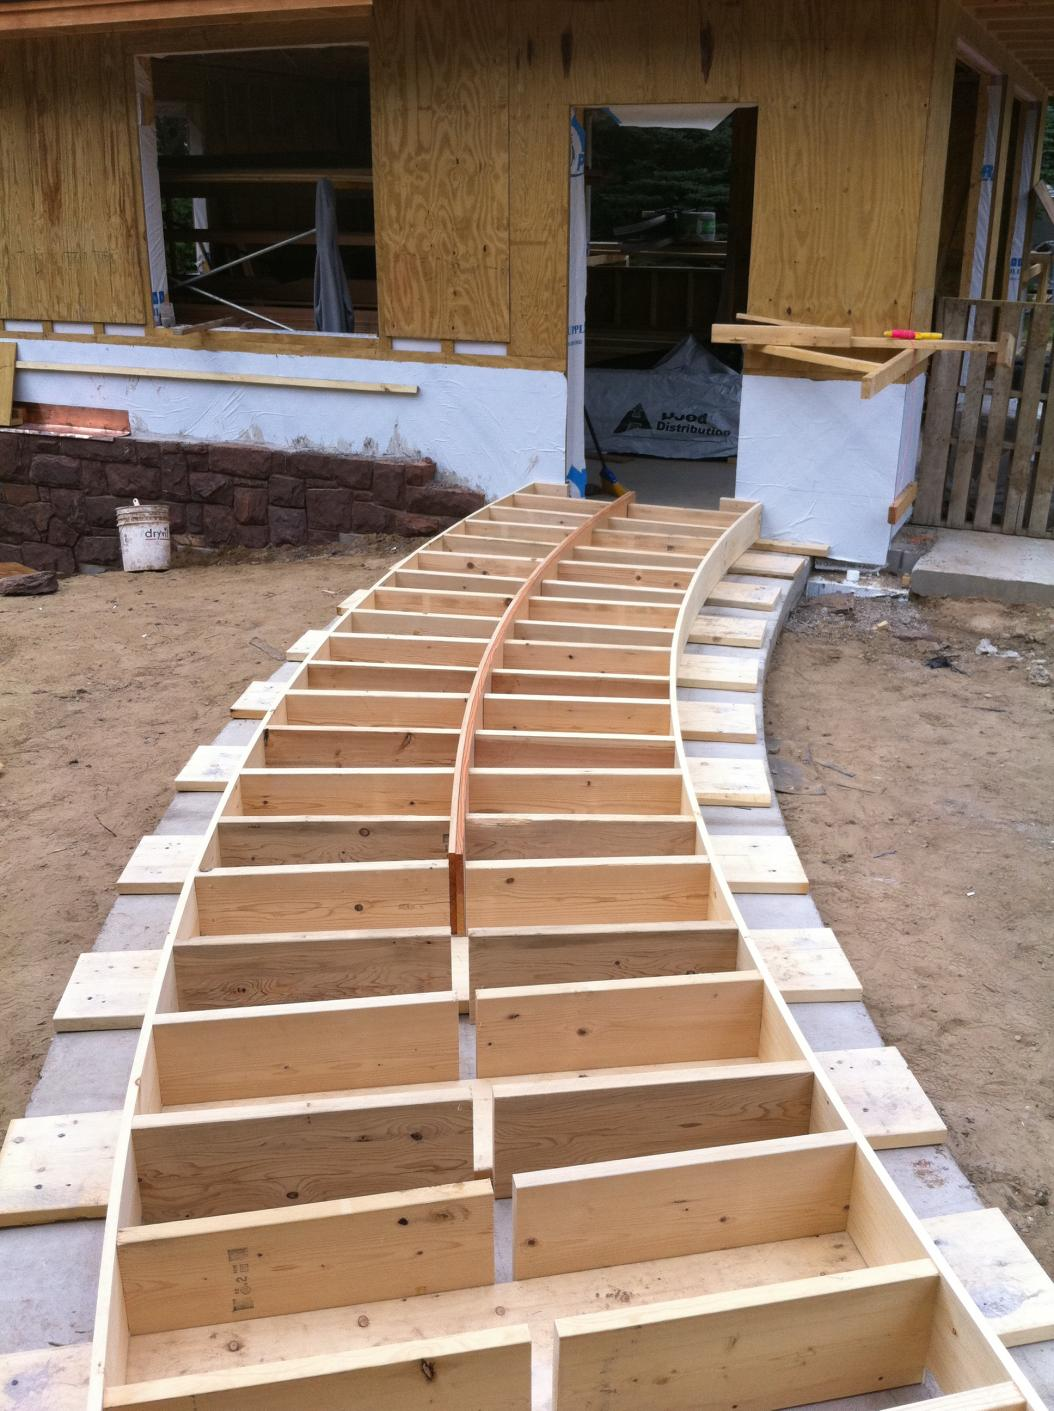 Wood Walkways Easy To Build : Chapter build a curved wooden walkway summer